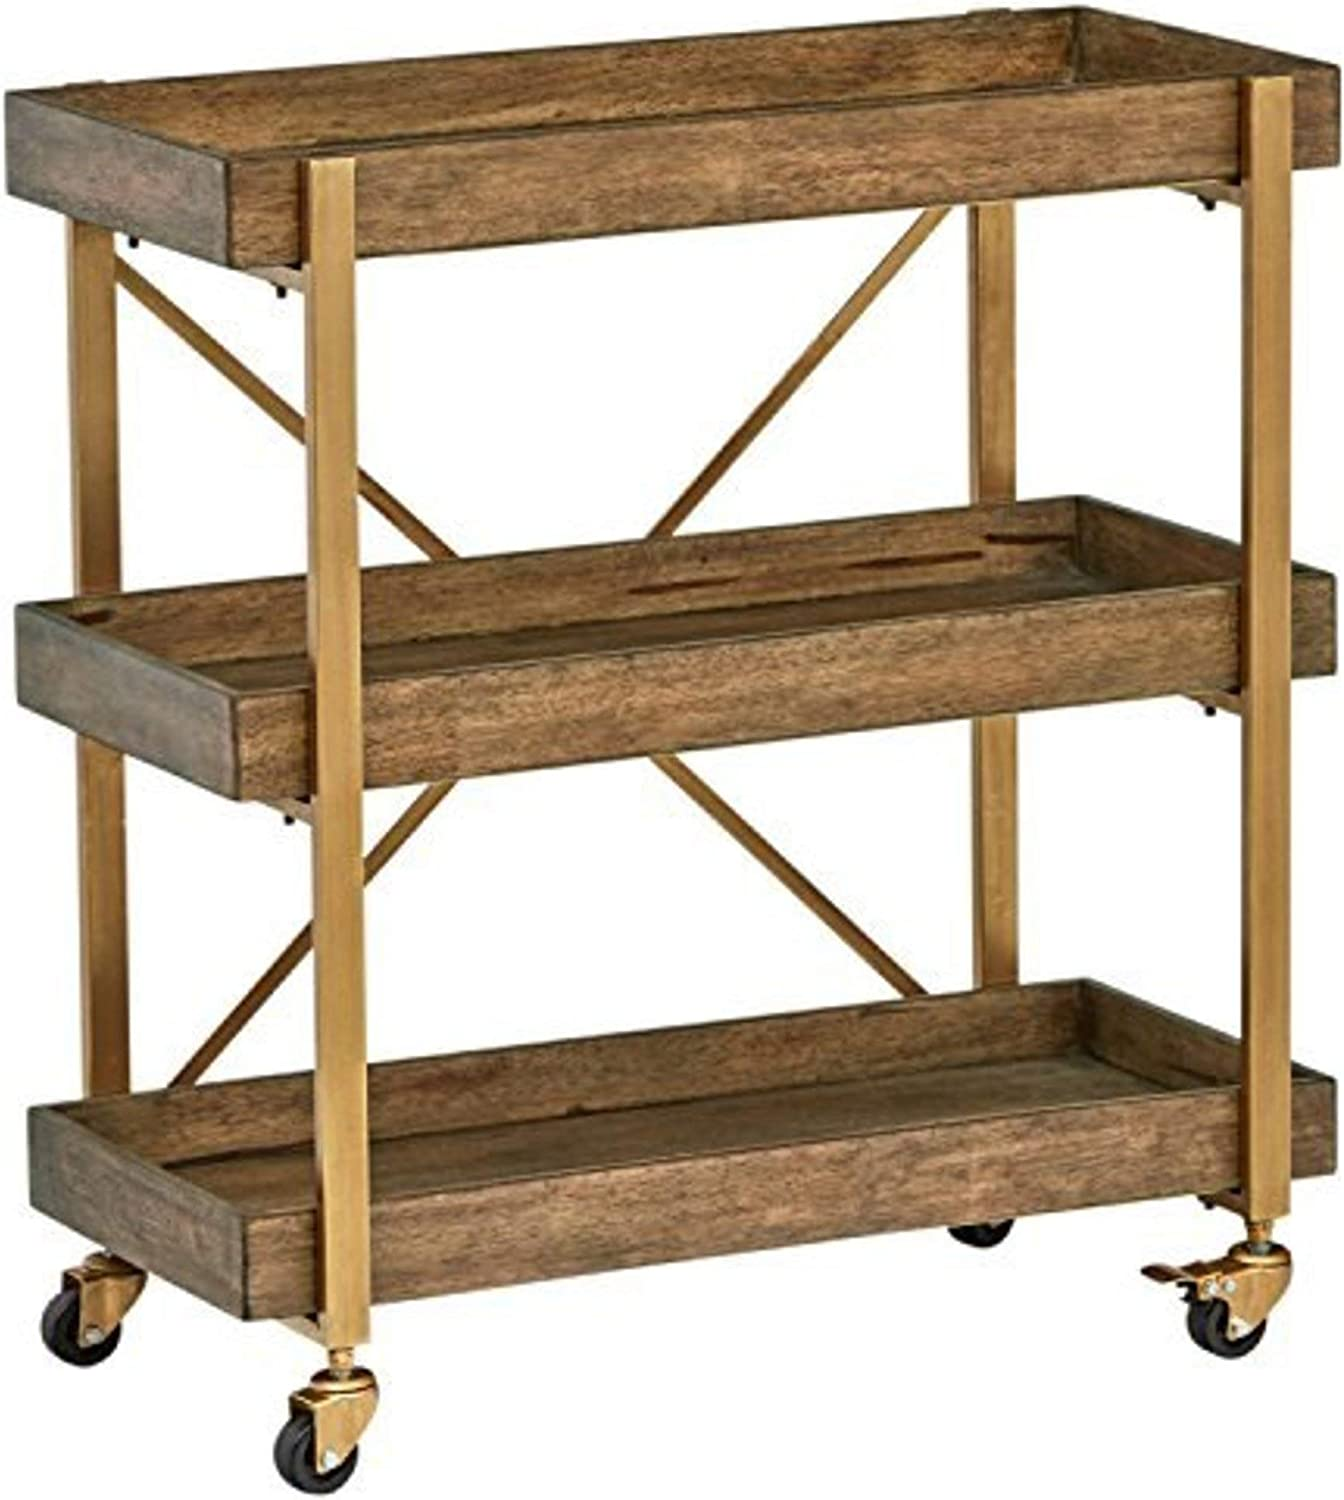 Amazon Brand – Rivet 3-Tiered Rustic Metallic Rolling Wood and Metal Bar Cart, 29.9